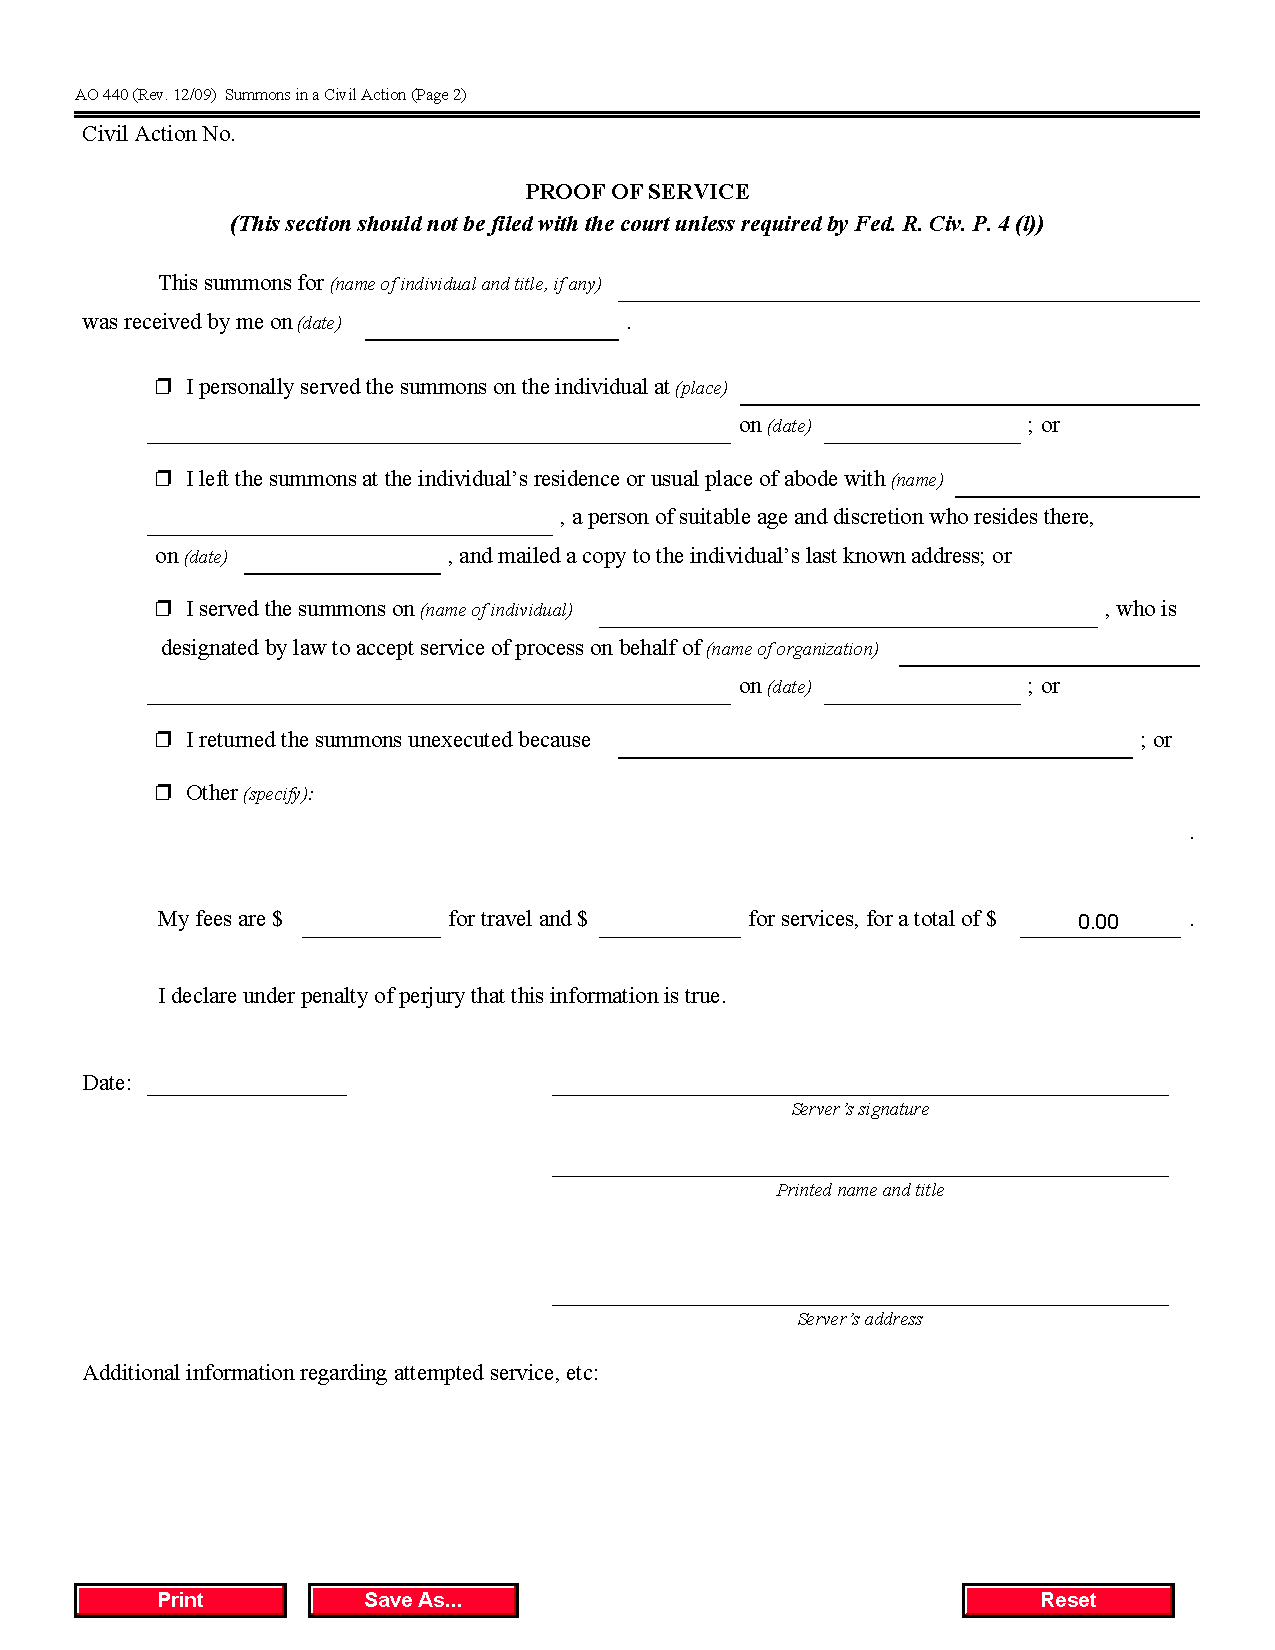 Civil summons form windenergyinvesting attractive formupack for civil summons form altavistaventures Gallery